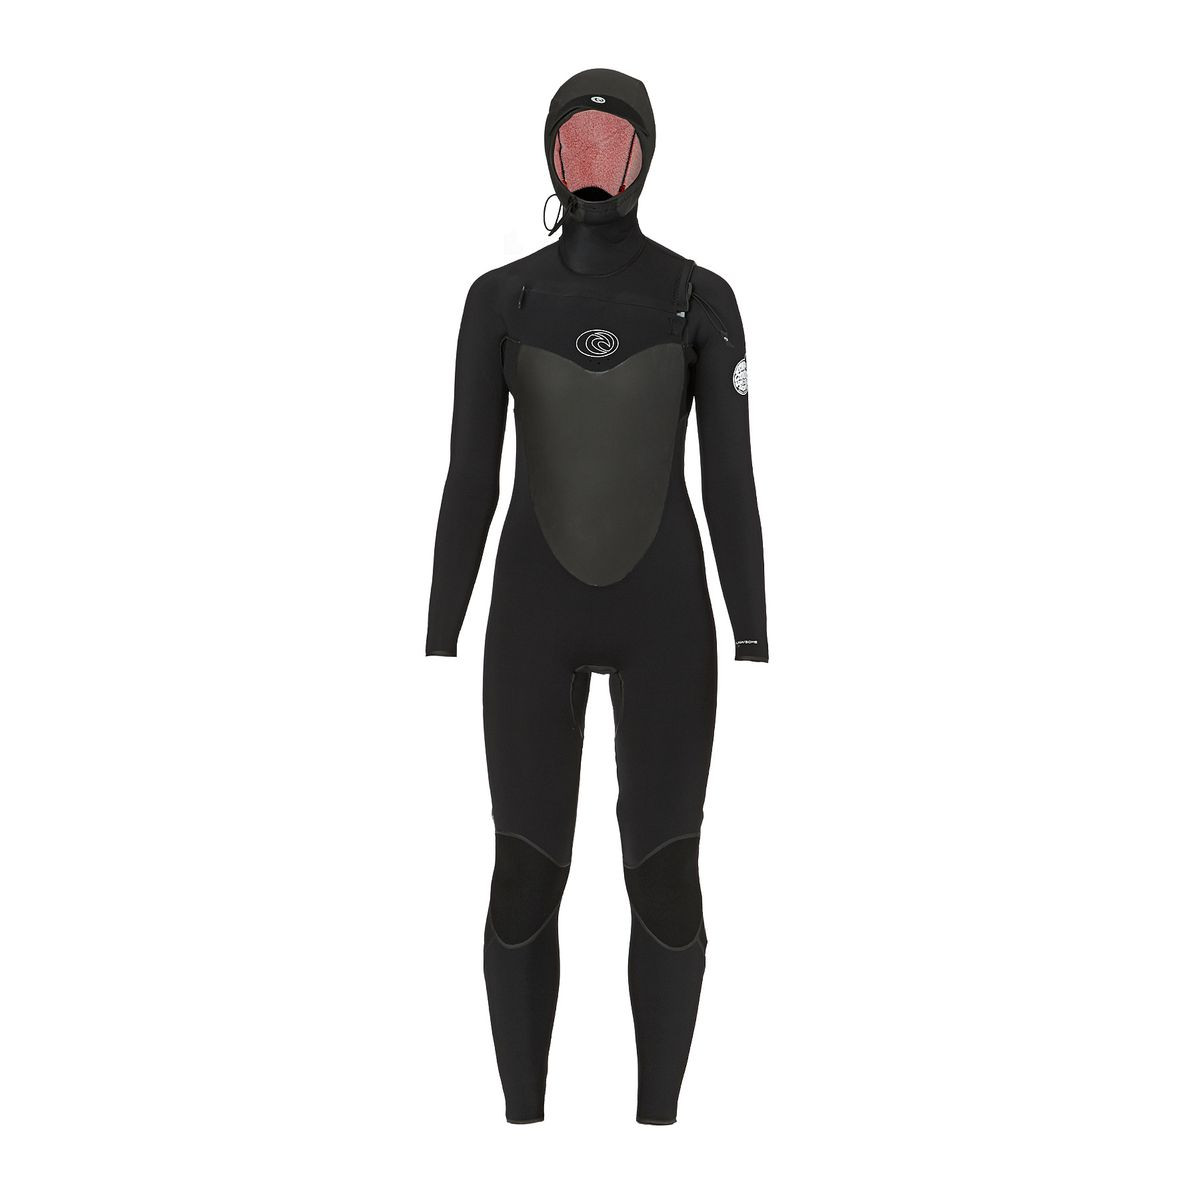 Rip Curl Womens F-Bomb 5/4mm 2017 Hooded Wetsuit - Black